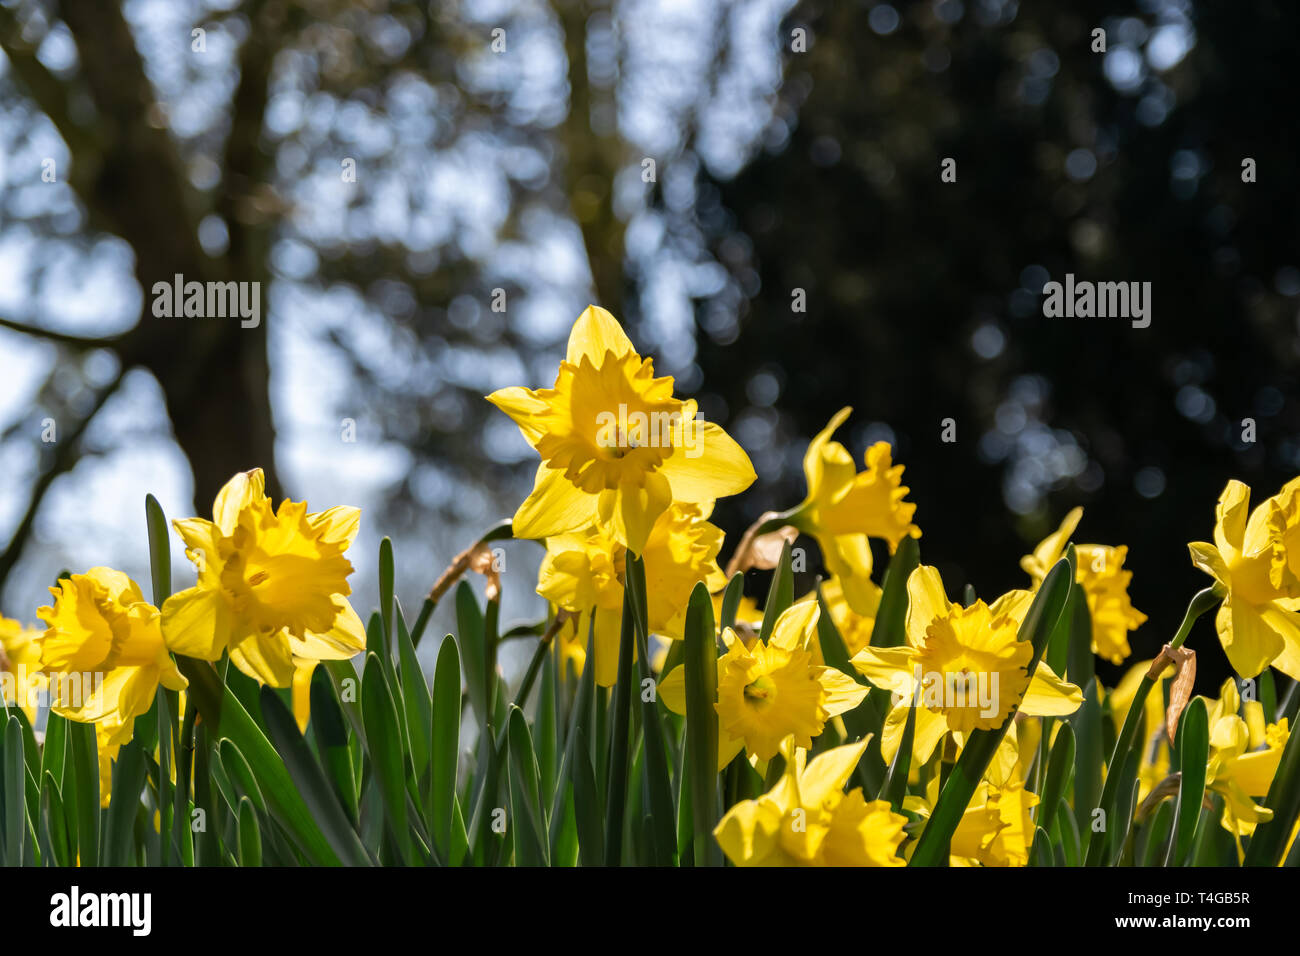 Blooming narcissus yellow flowers on a natural blurred background. - Stock Image